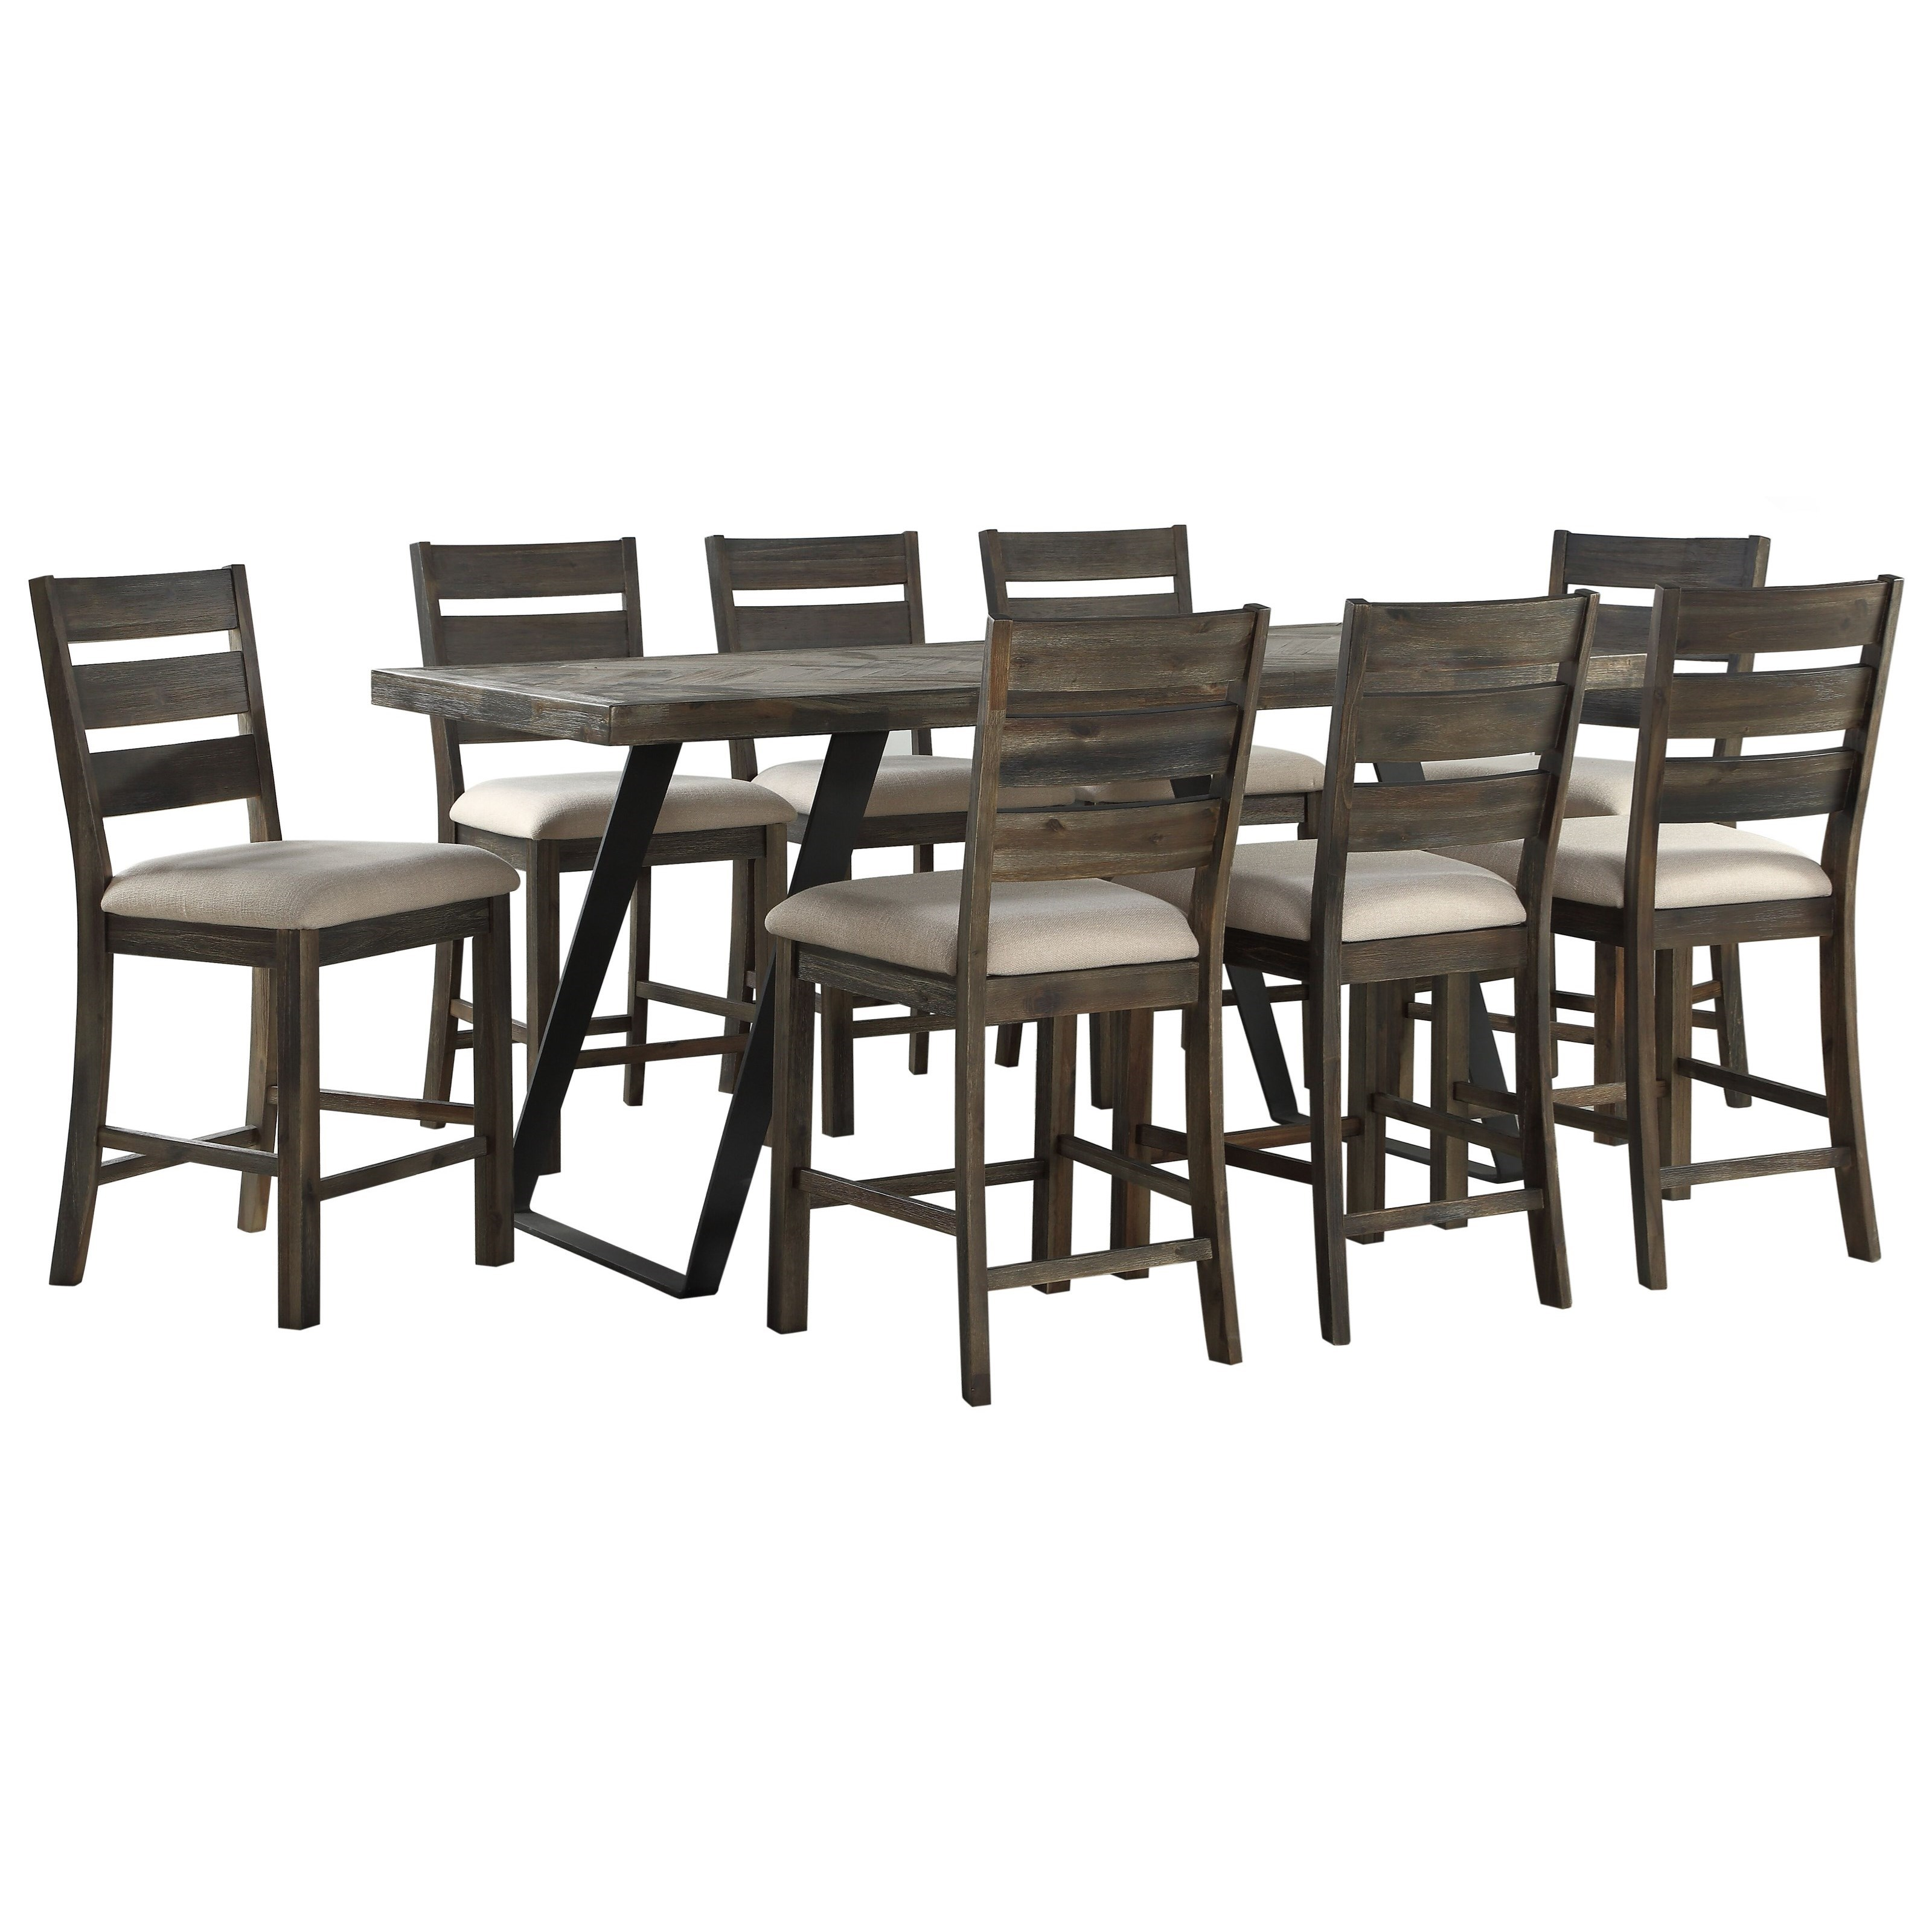 Aspen Court 9-Piece Counter Height Table and Chair Set by Coast to Coast Imports at Baer's Furniture